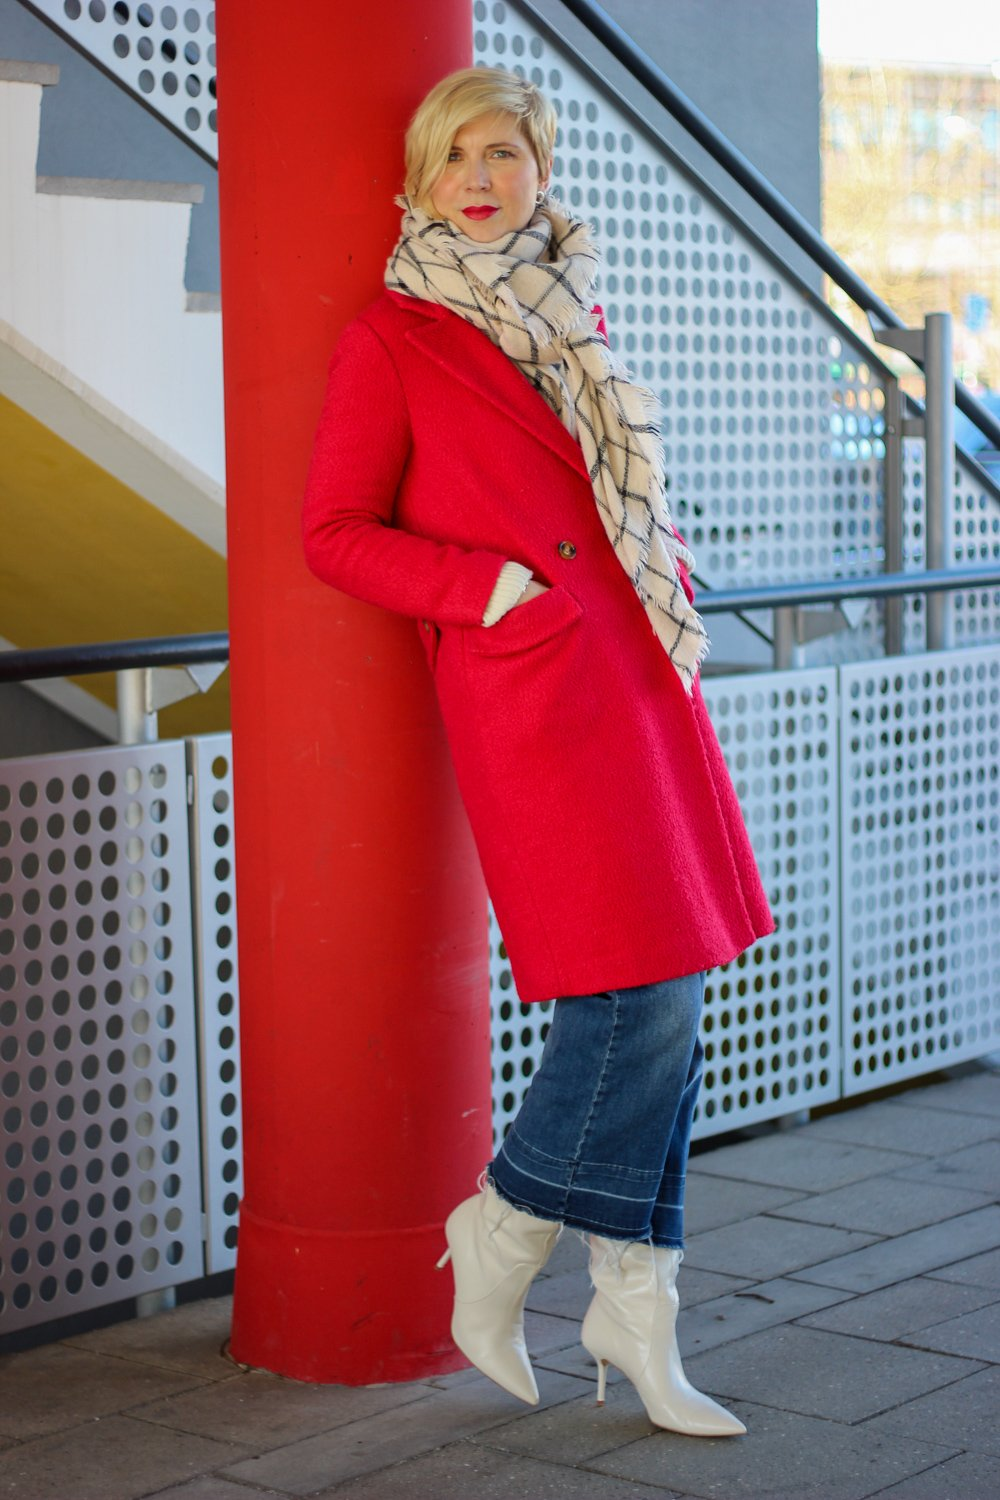 conny doll lifestyle: Denimculotte, Stiefel, roter Mantel, casual Styling